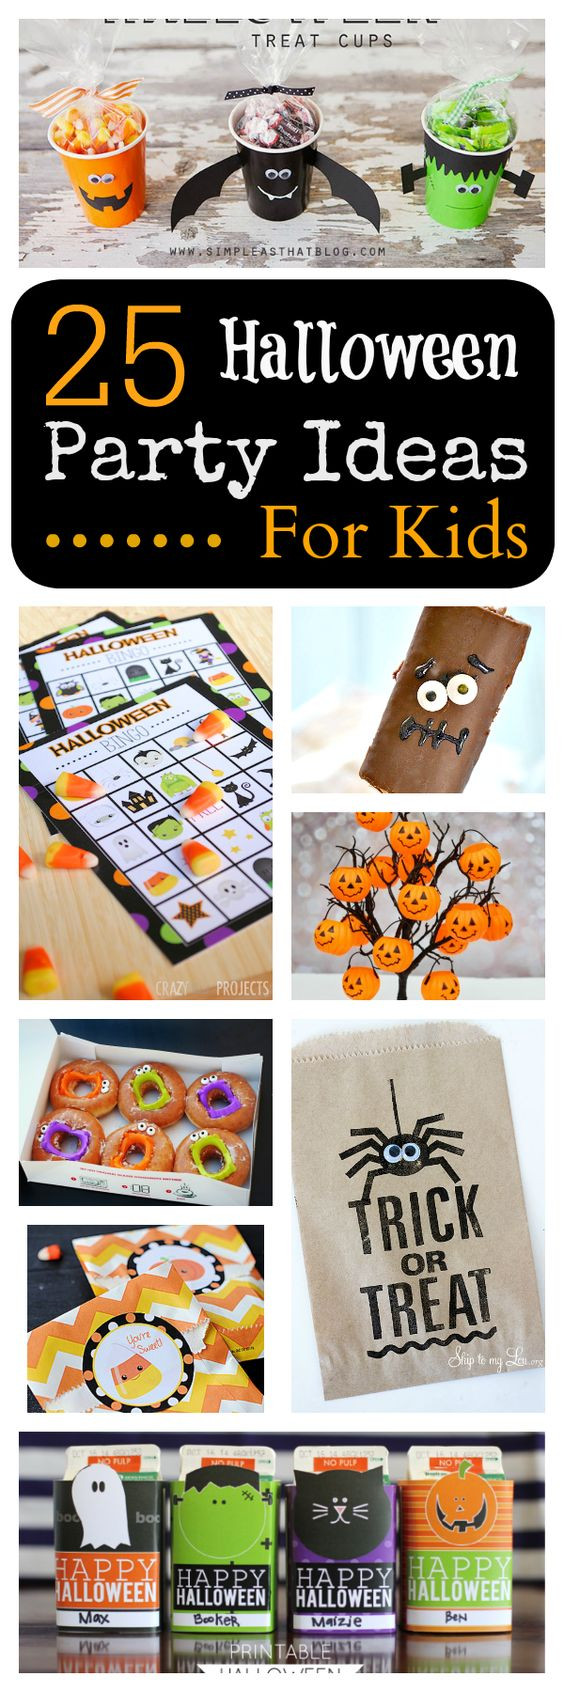 Halloween Party Games Ideas For Teenagers  25 School Halloween Party Ideas for Kids